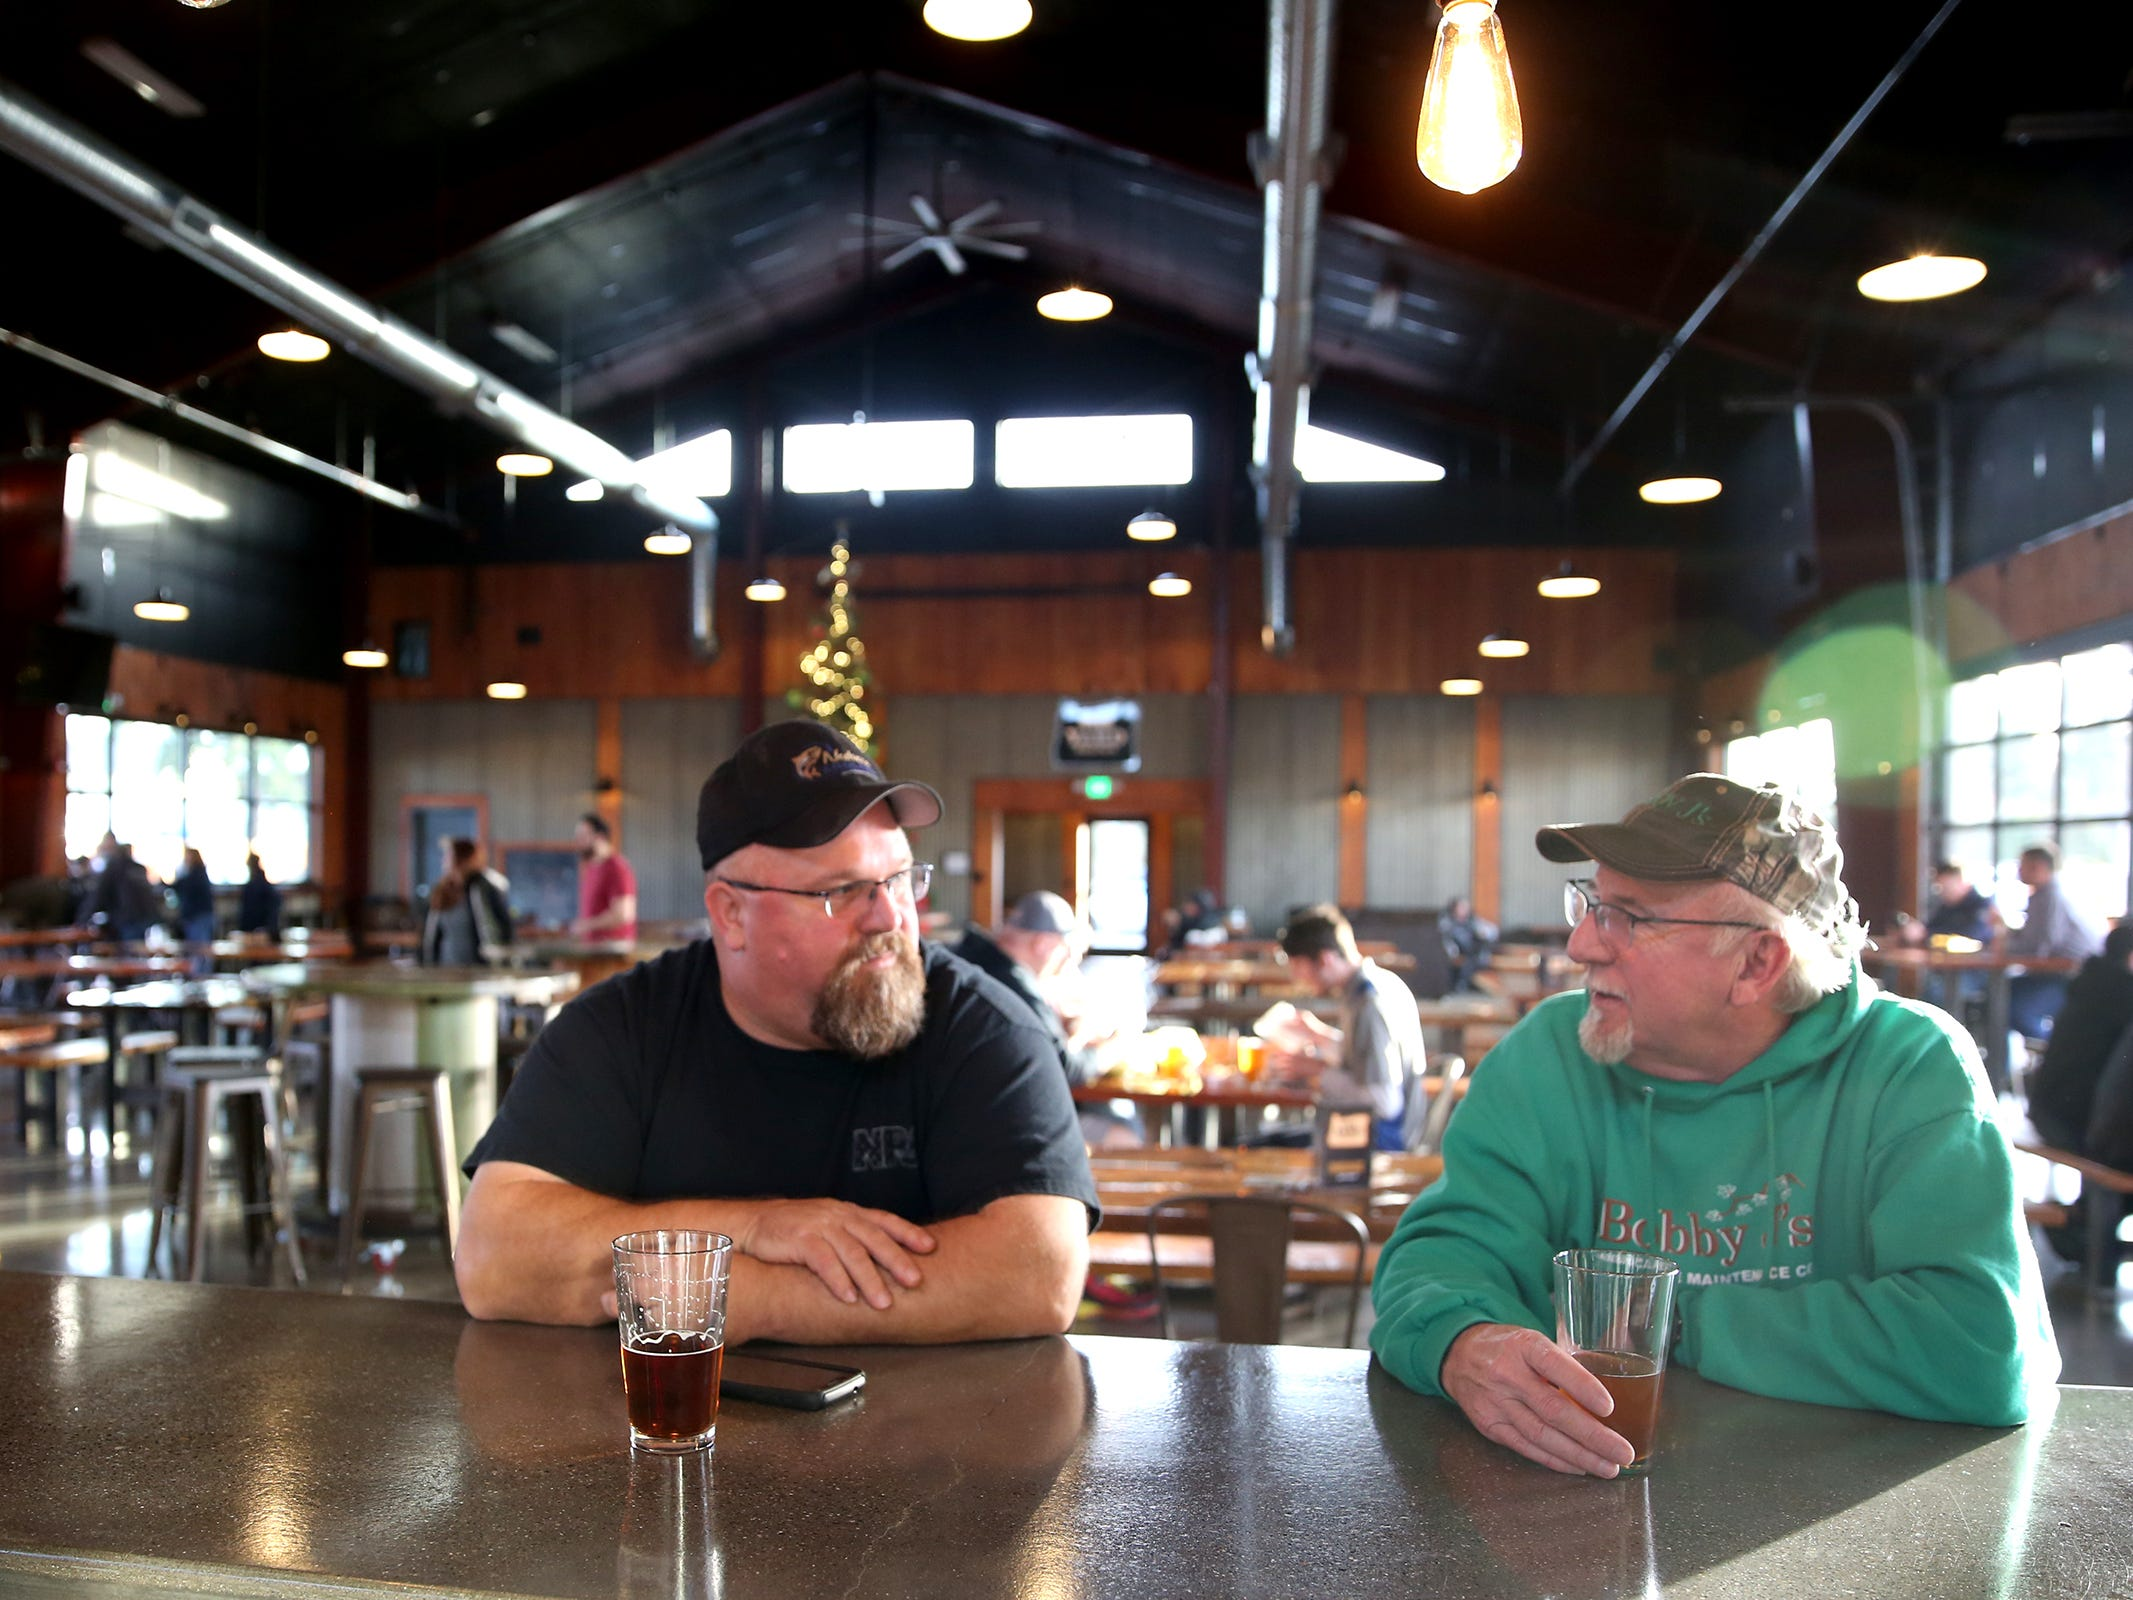 Salem residents Eric White and Bob Johnson enjoy a beer on opening day of The Yard Food Park in Salem on Thursday, Dec. 13, 2018.